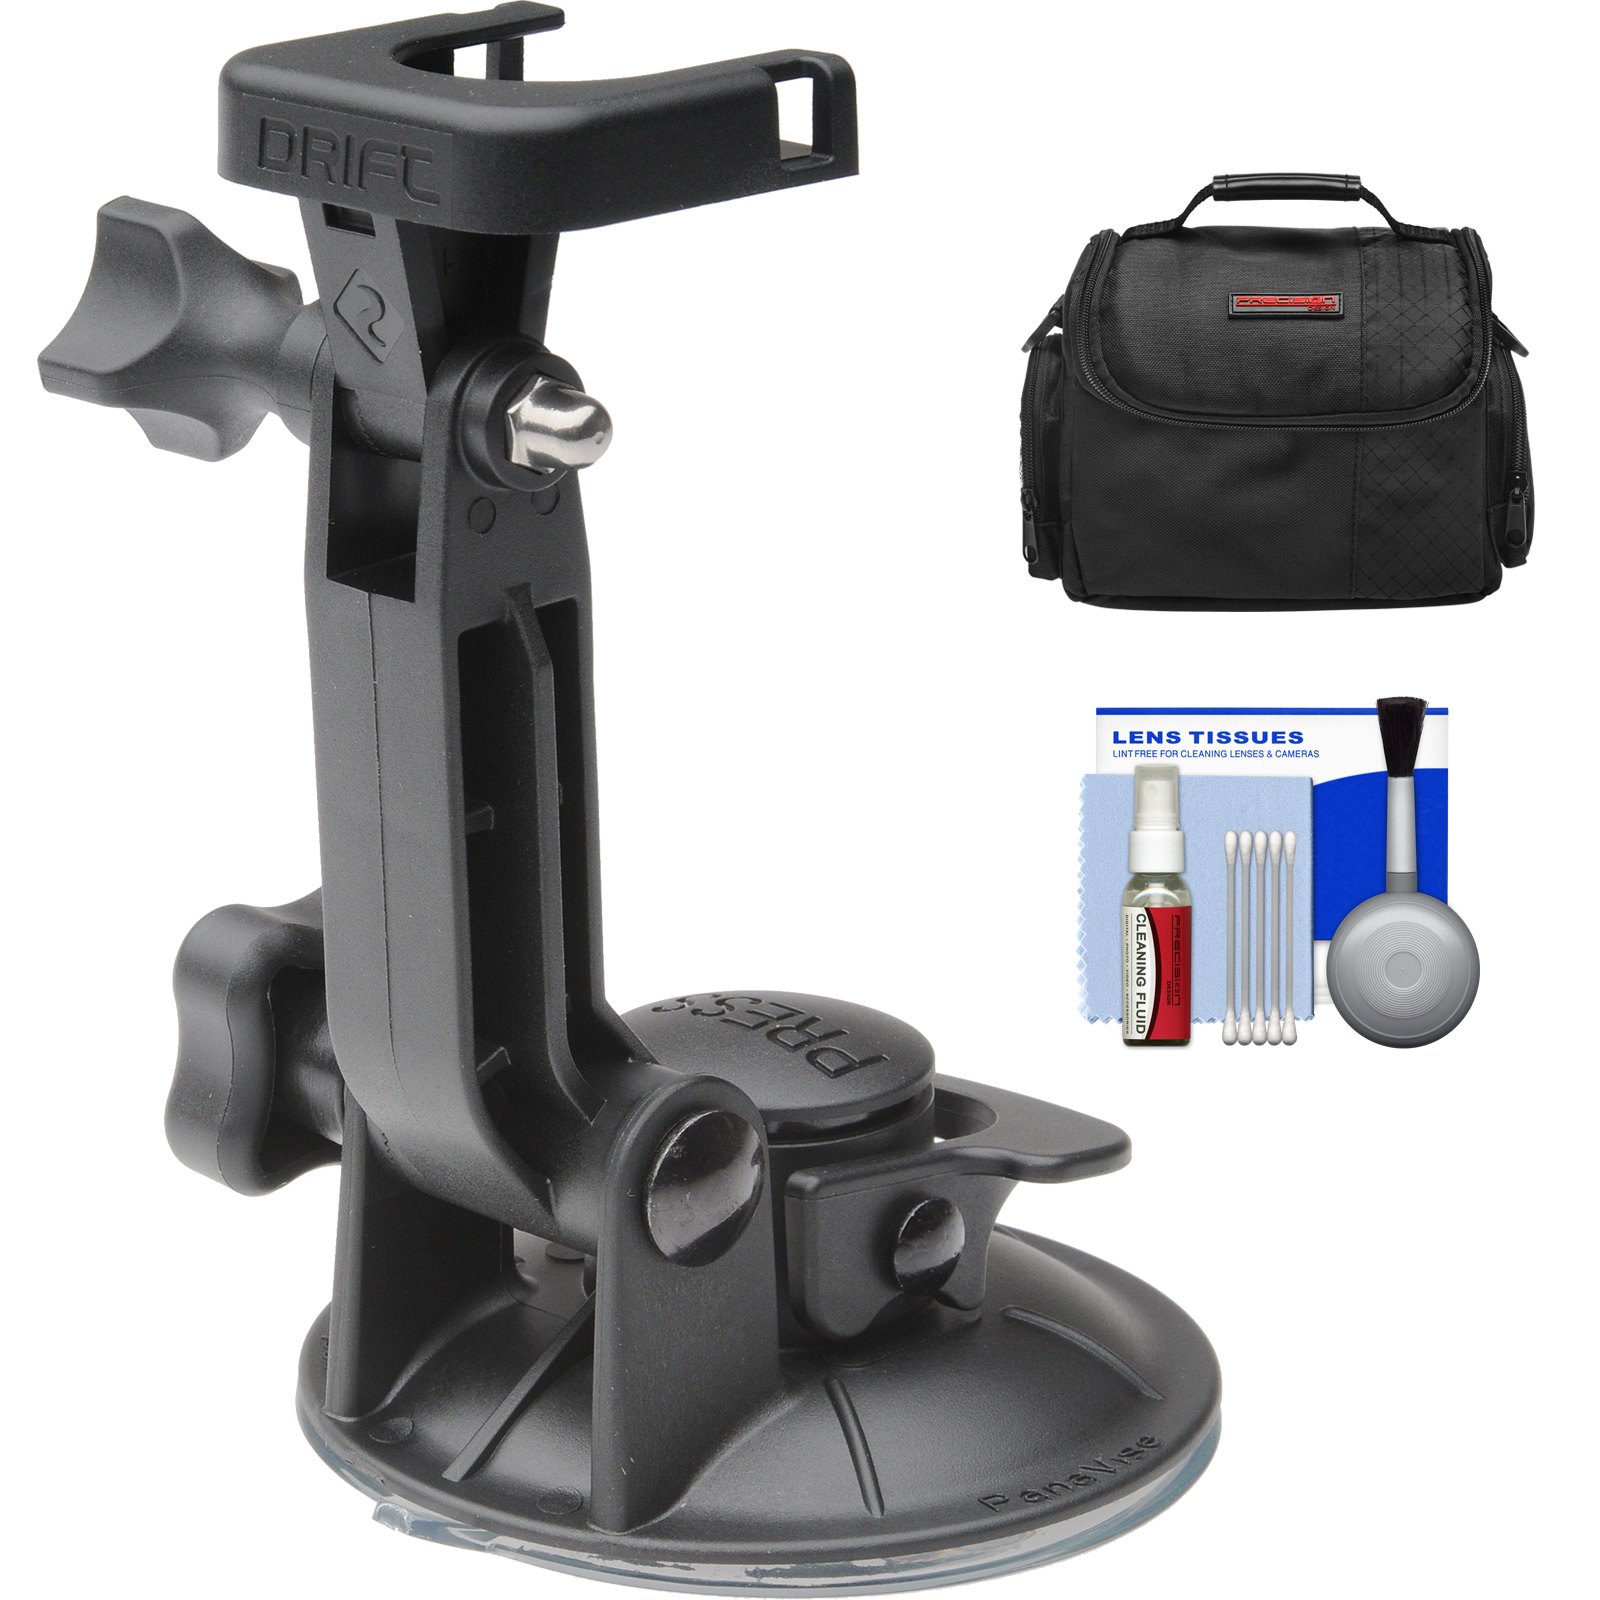 Drift Innovation Suction Cup Mount with Case + Cleaning Kit for Drift HD, HD 170, Ghost, Ghost-S Action Camcorders